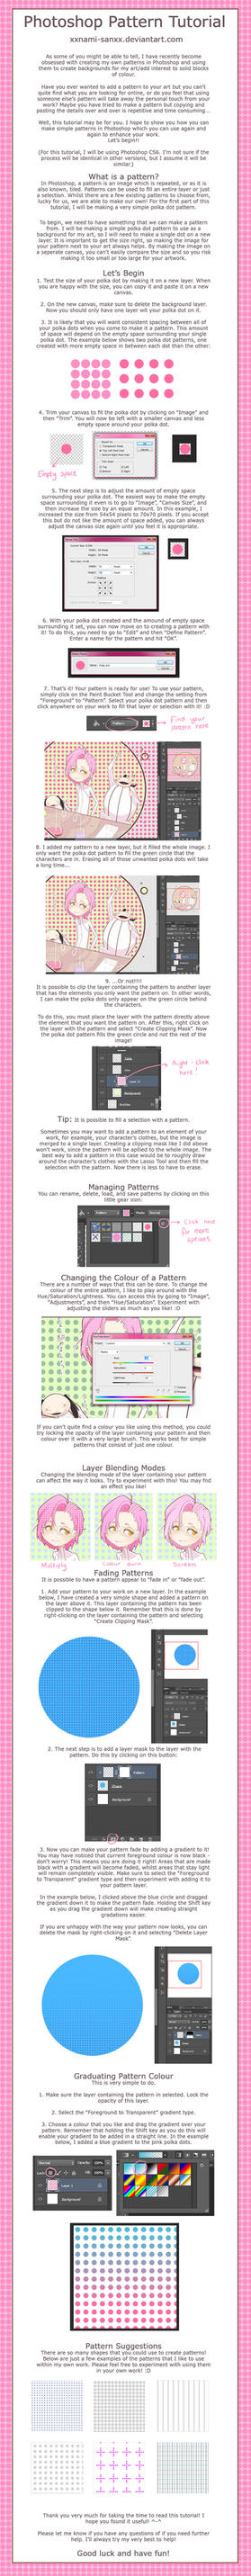 Nami's Photoshop Pattern Tutorial by Namiiru